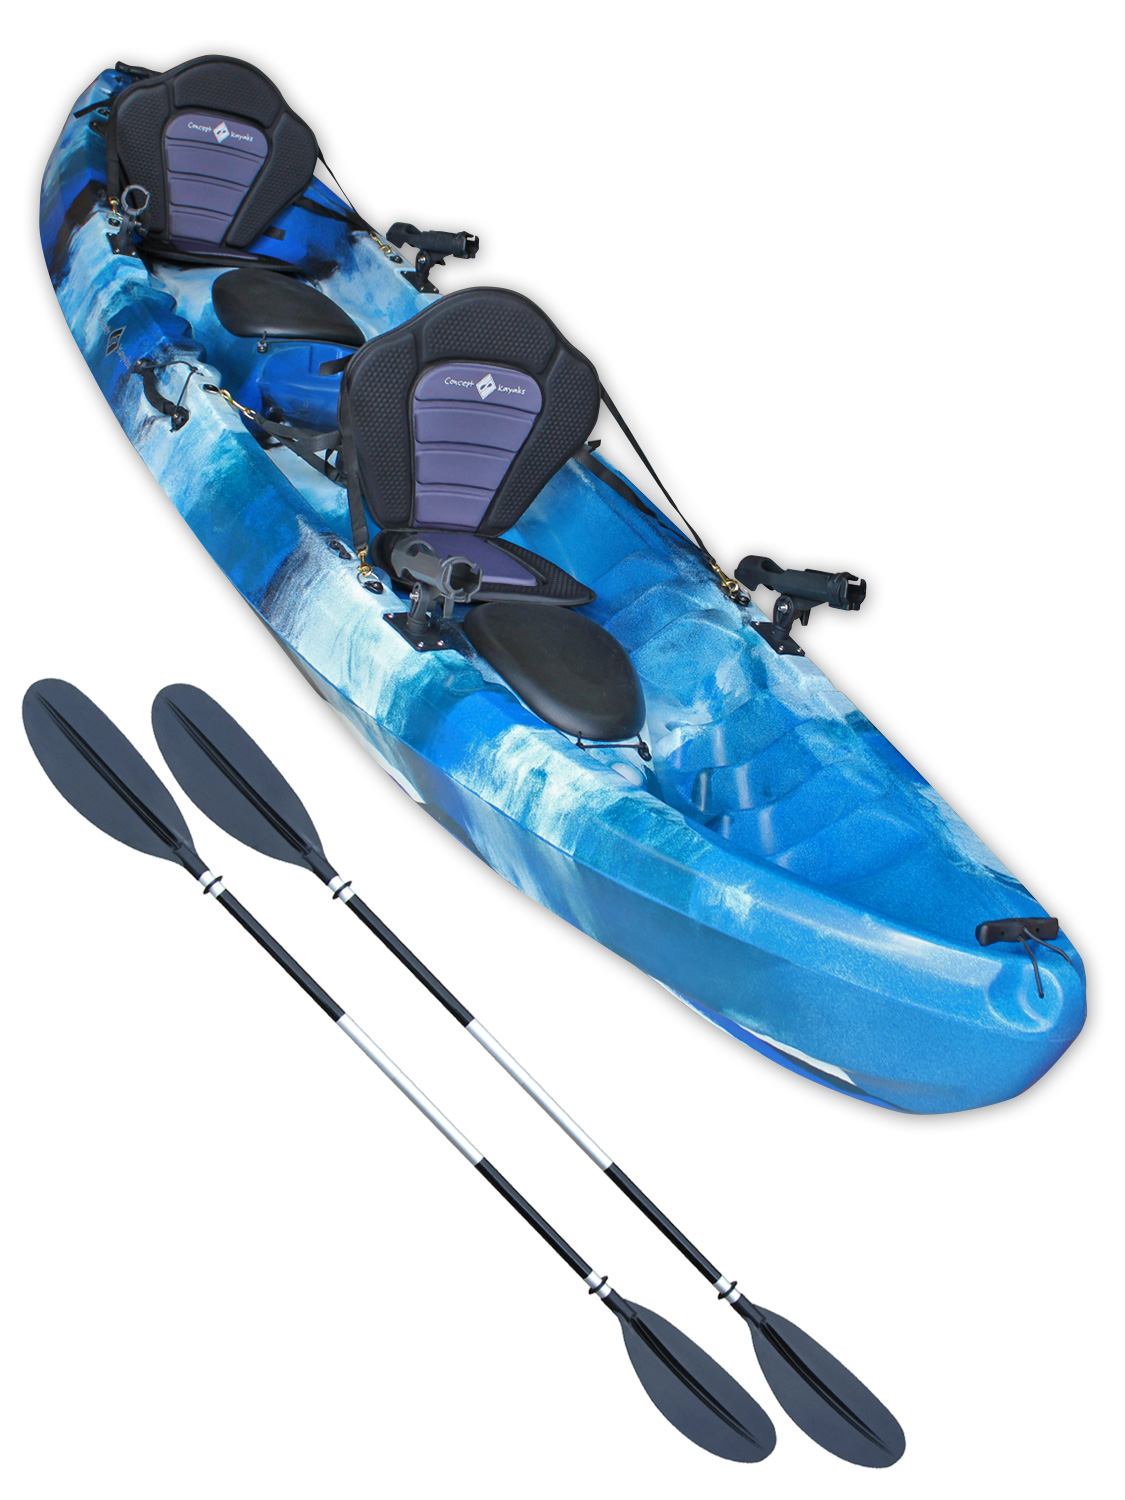 Tandem sit on top fishing kayak double canoe concept for Best tandem fishing kayak